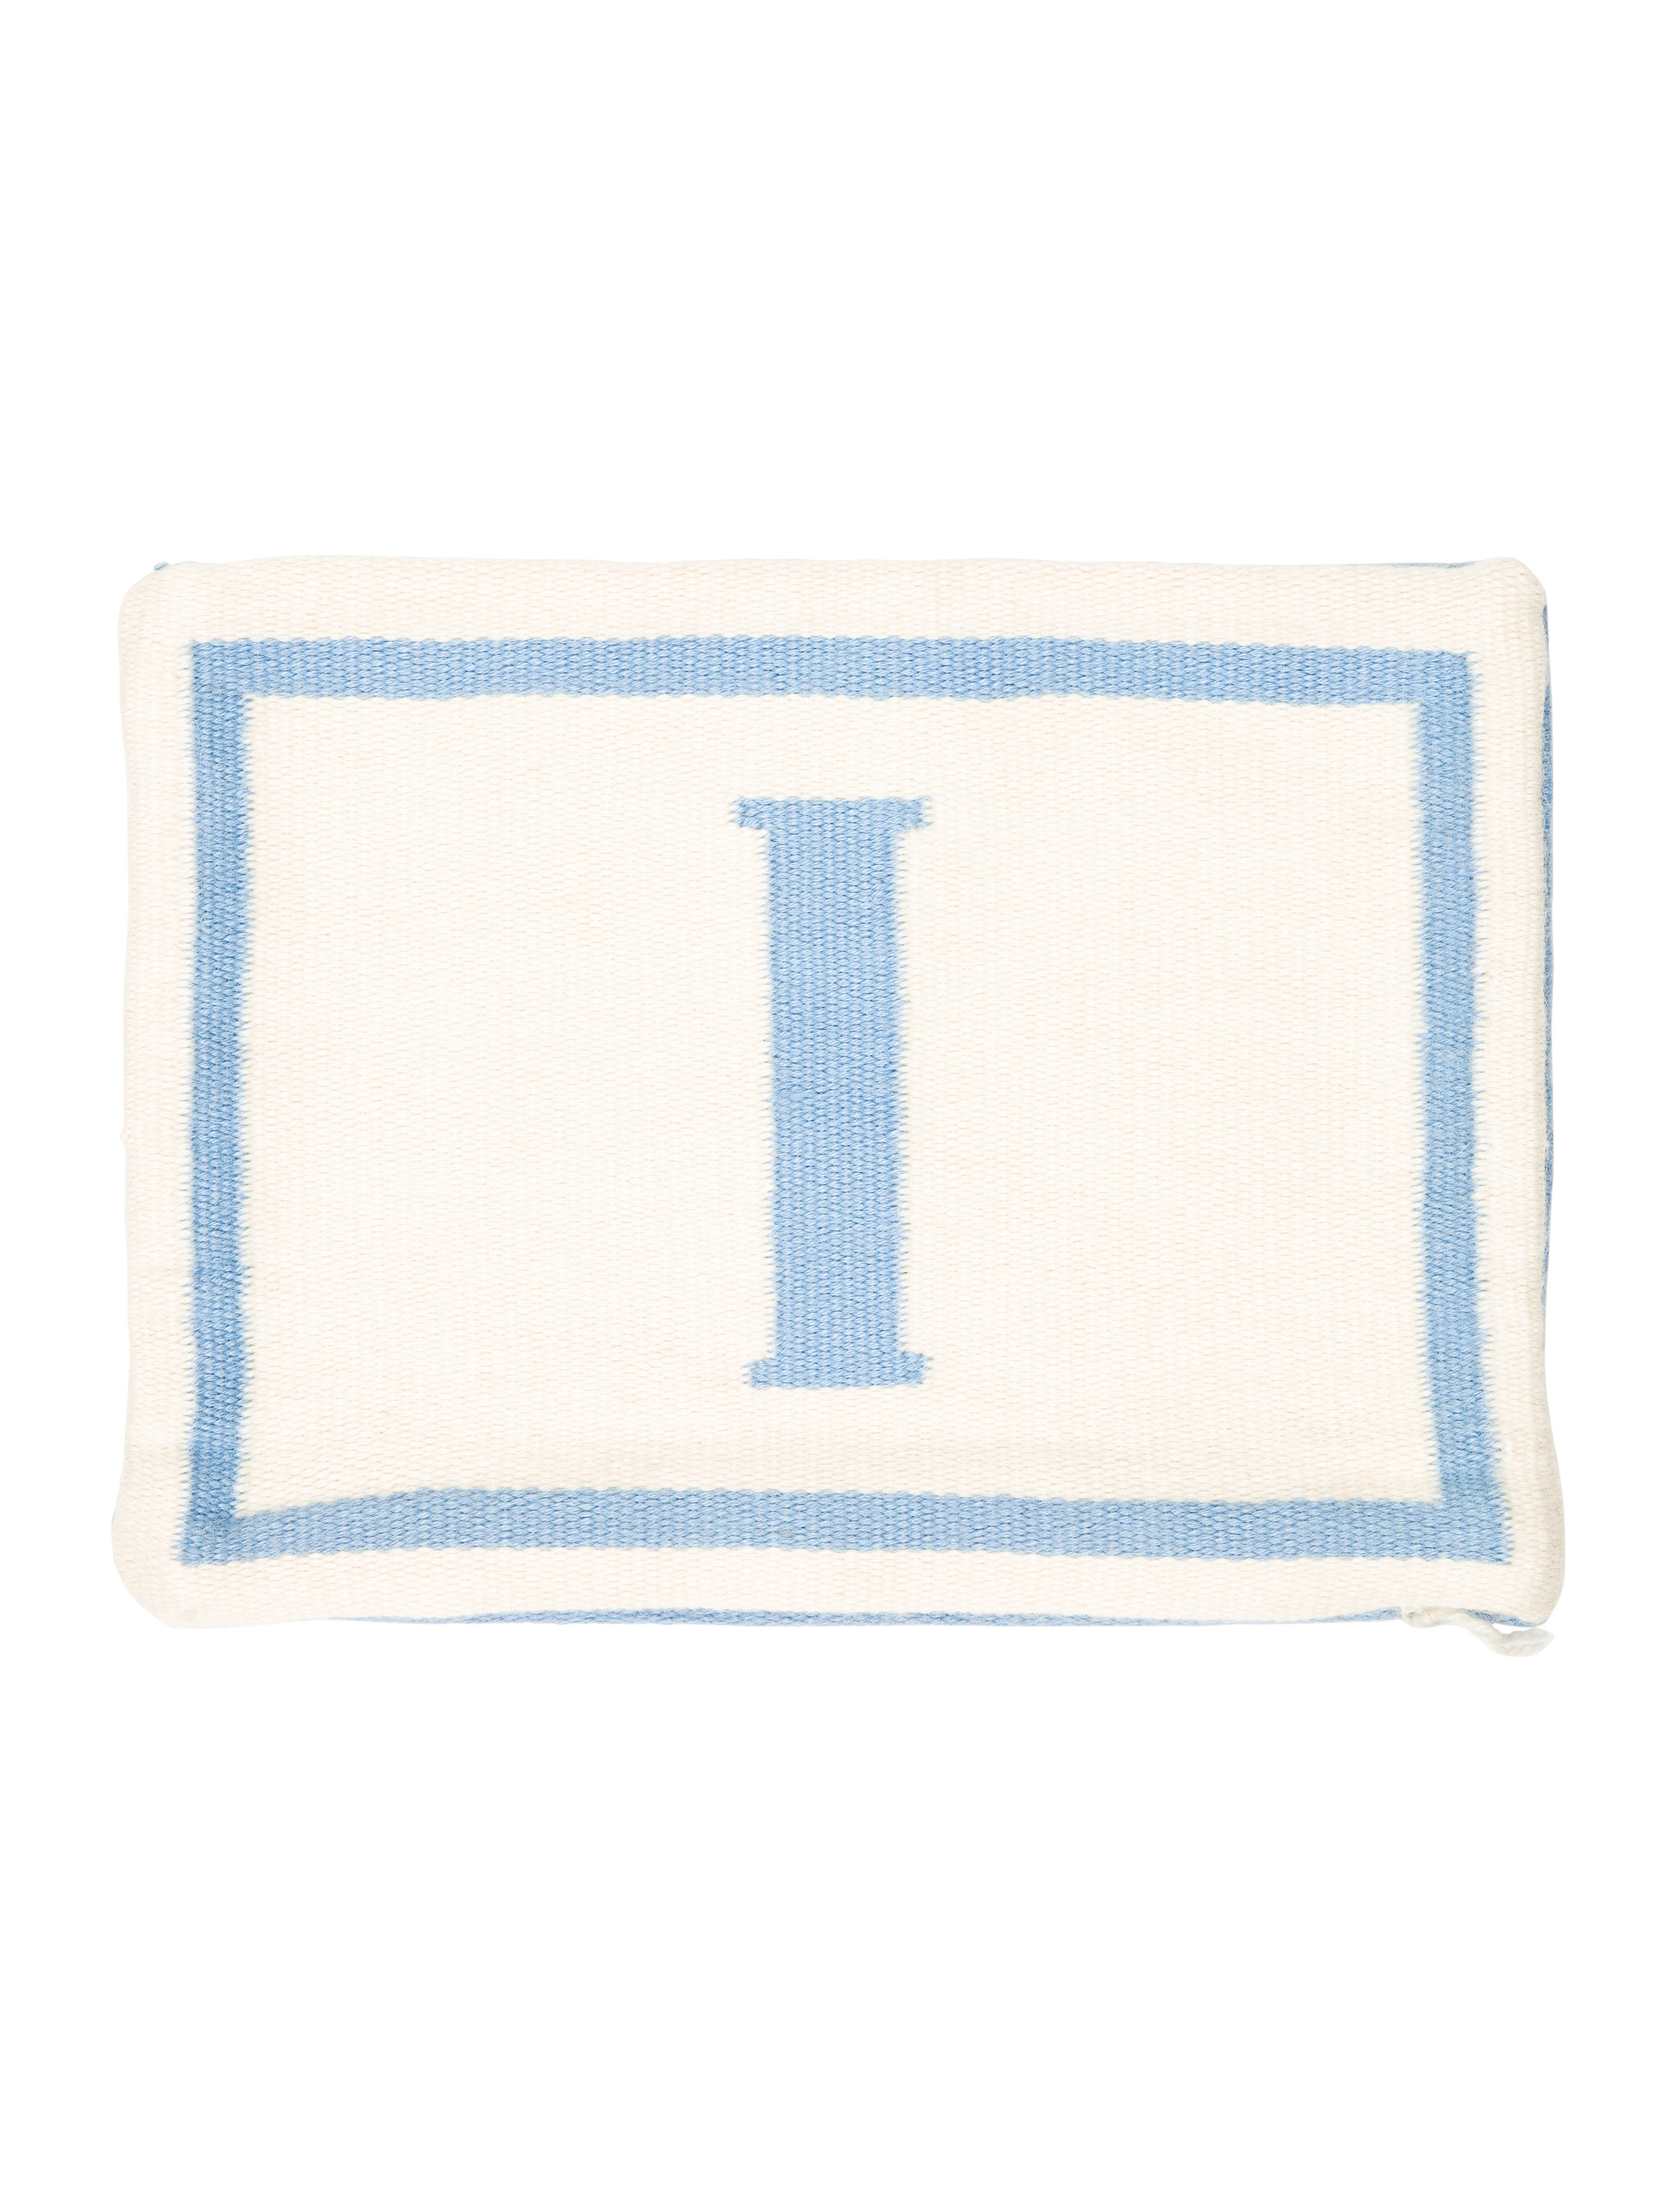 Jonathan Adler Reversible Junior Letter Throw Pillow Case w/ Tags - Bedding And Bath ...